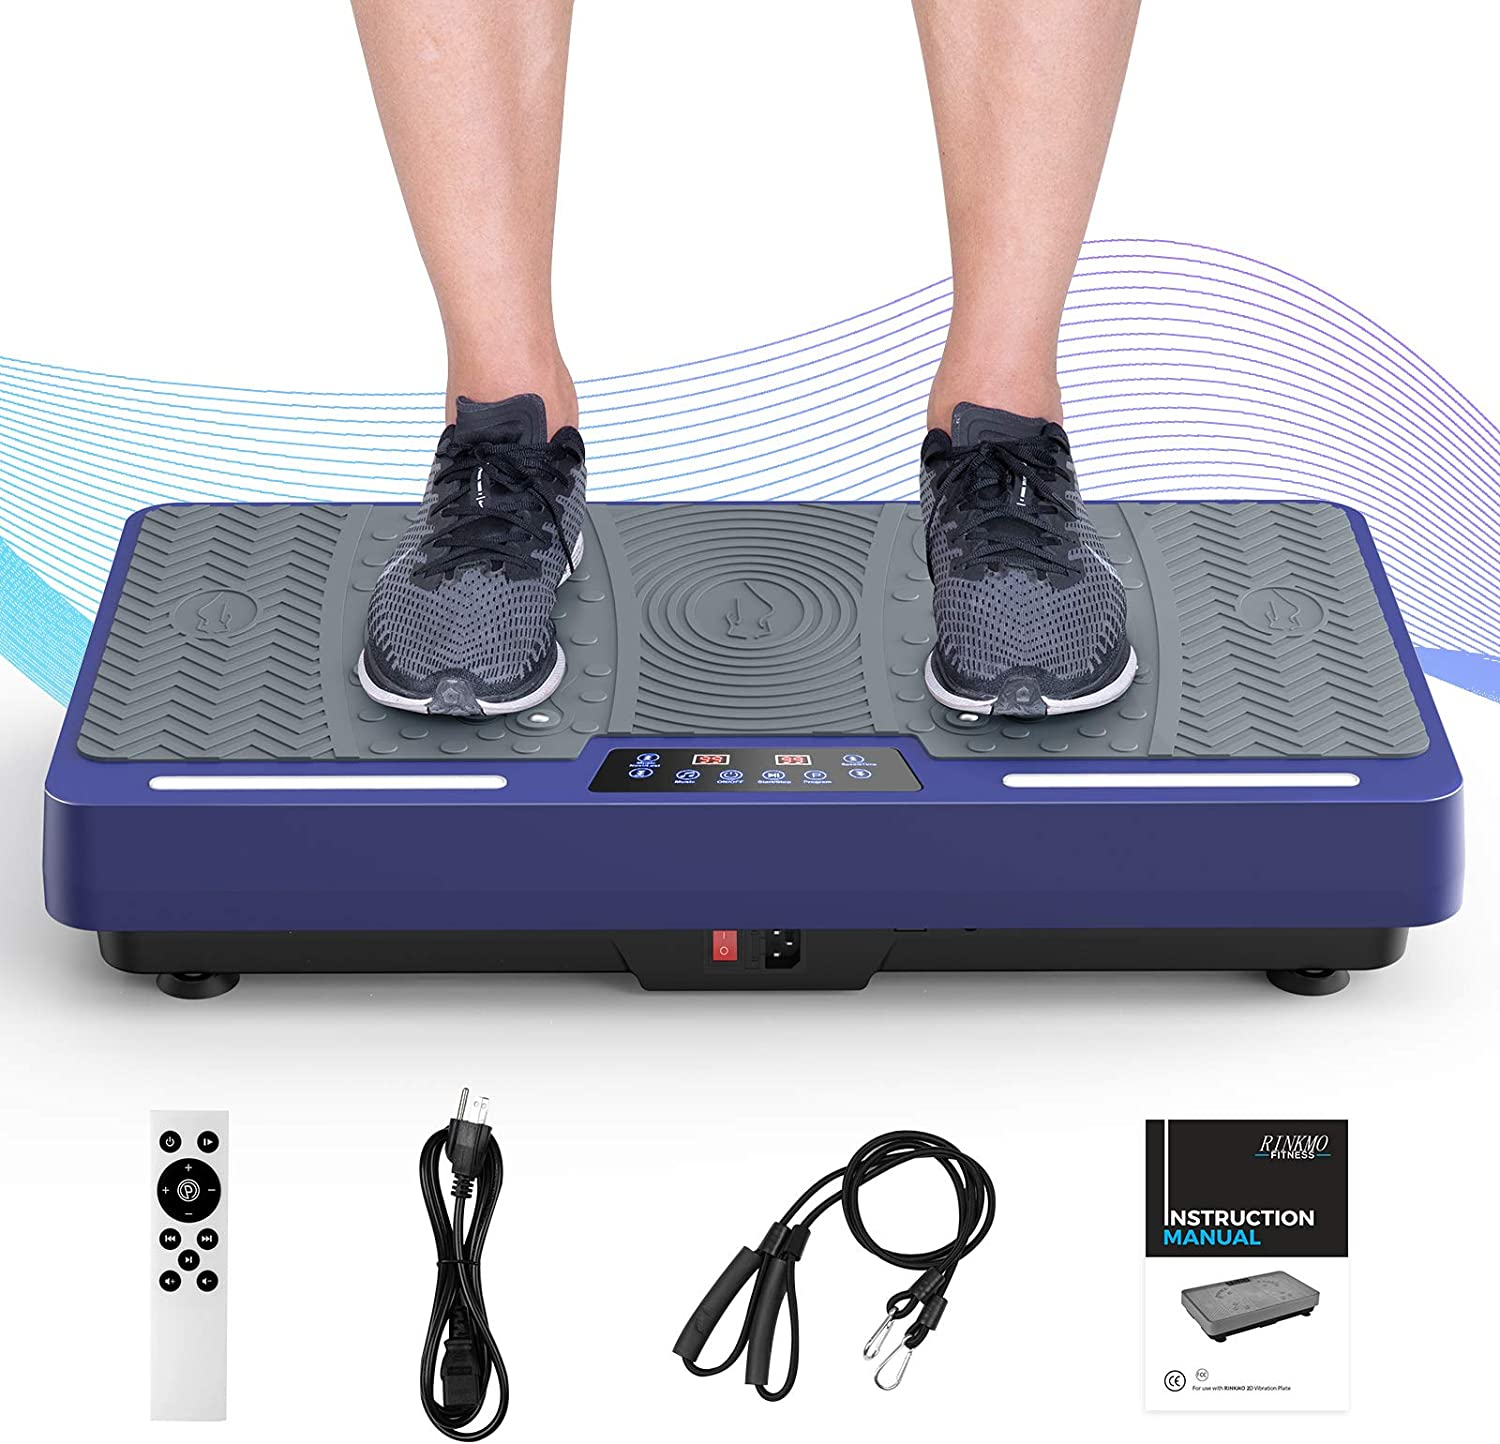 RINKMO Vibration Plate Exercise Machines with Resistance Bands, Whole Body Workout Vibrating Platform with Bluetooth Speaker LED Light Bar for Home Fitness Training Equipment and Weight Loss Blue